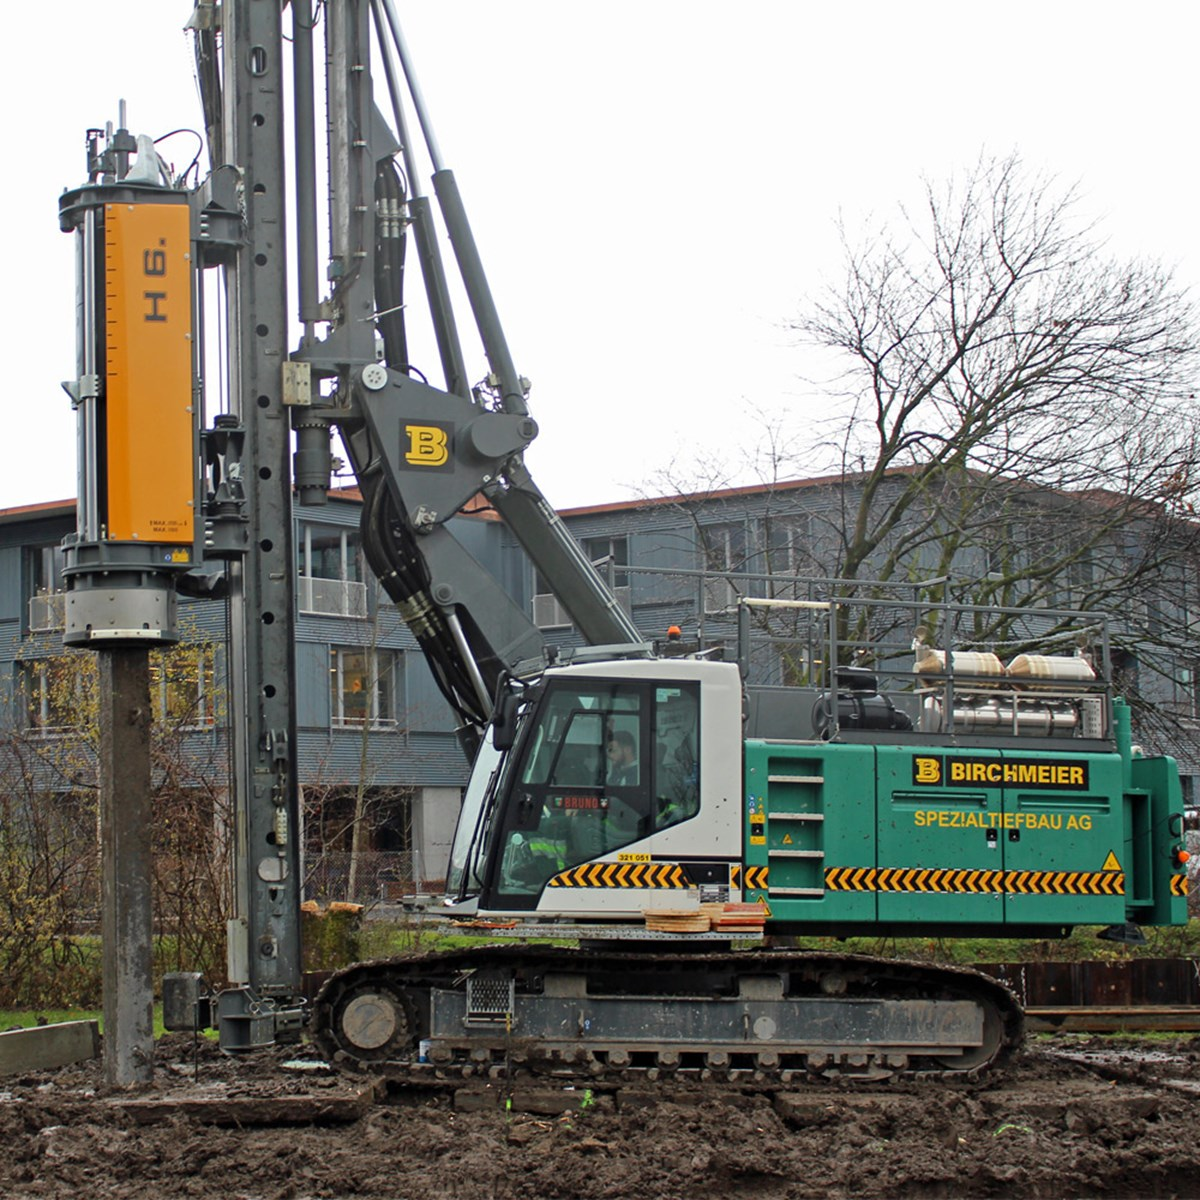 liebherr-piling-and-drilling-lrb-18-hammer-h-6-impacting-pre-fab-concrete-pi-2.jpg